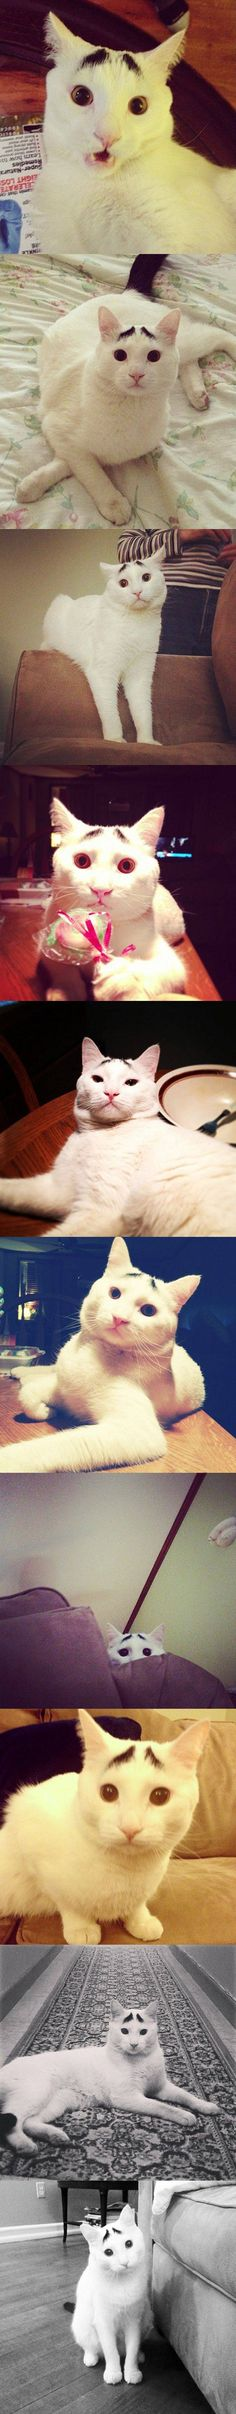 Here are 10 pictures of Sam, the famous cat with real eyebrows.